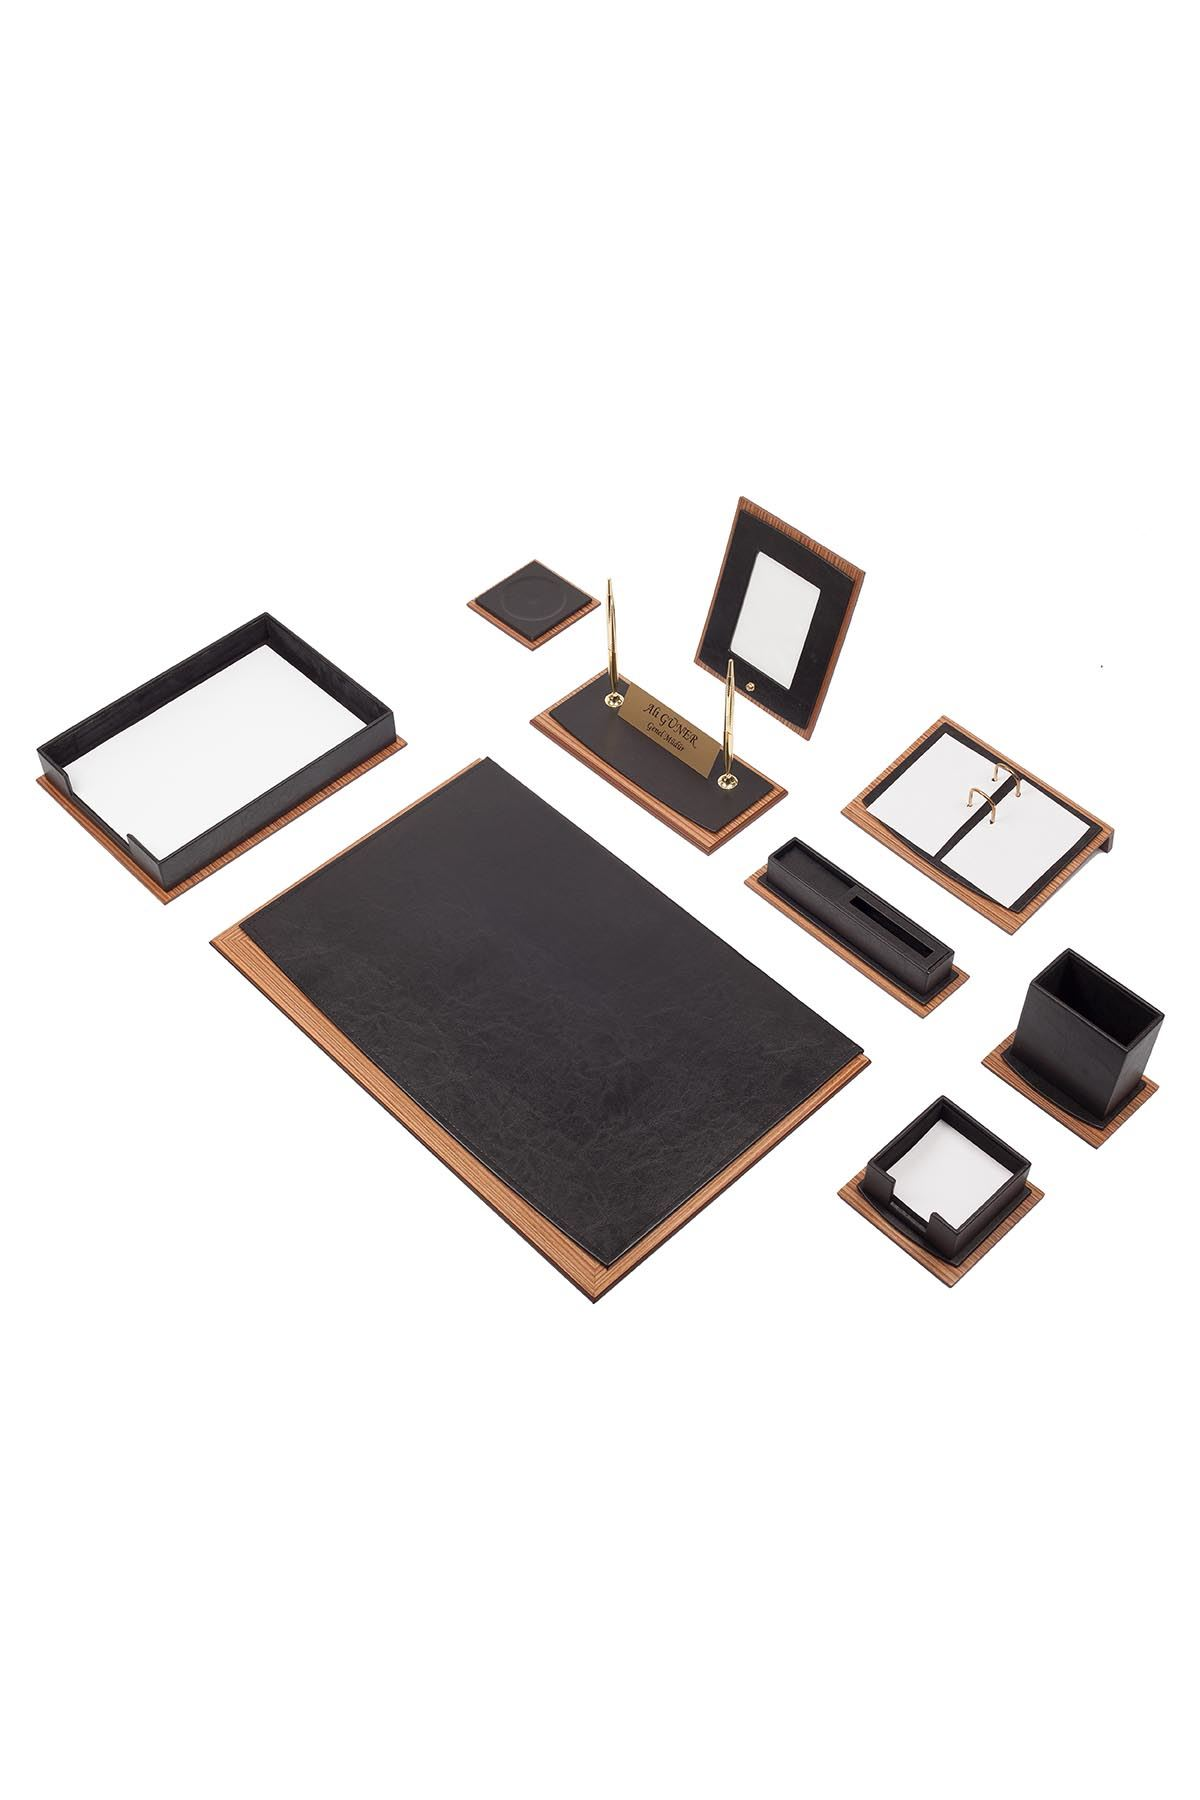 Star Lux Leather Desk Set Black 11 Accessories